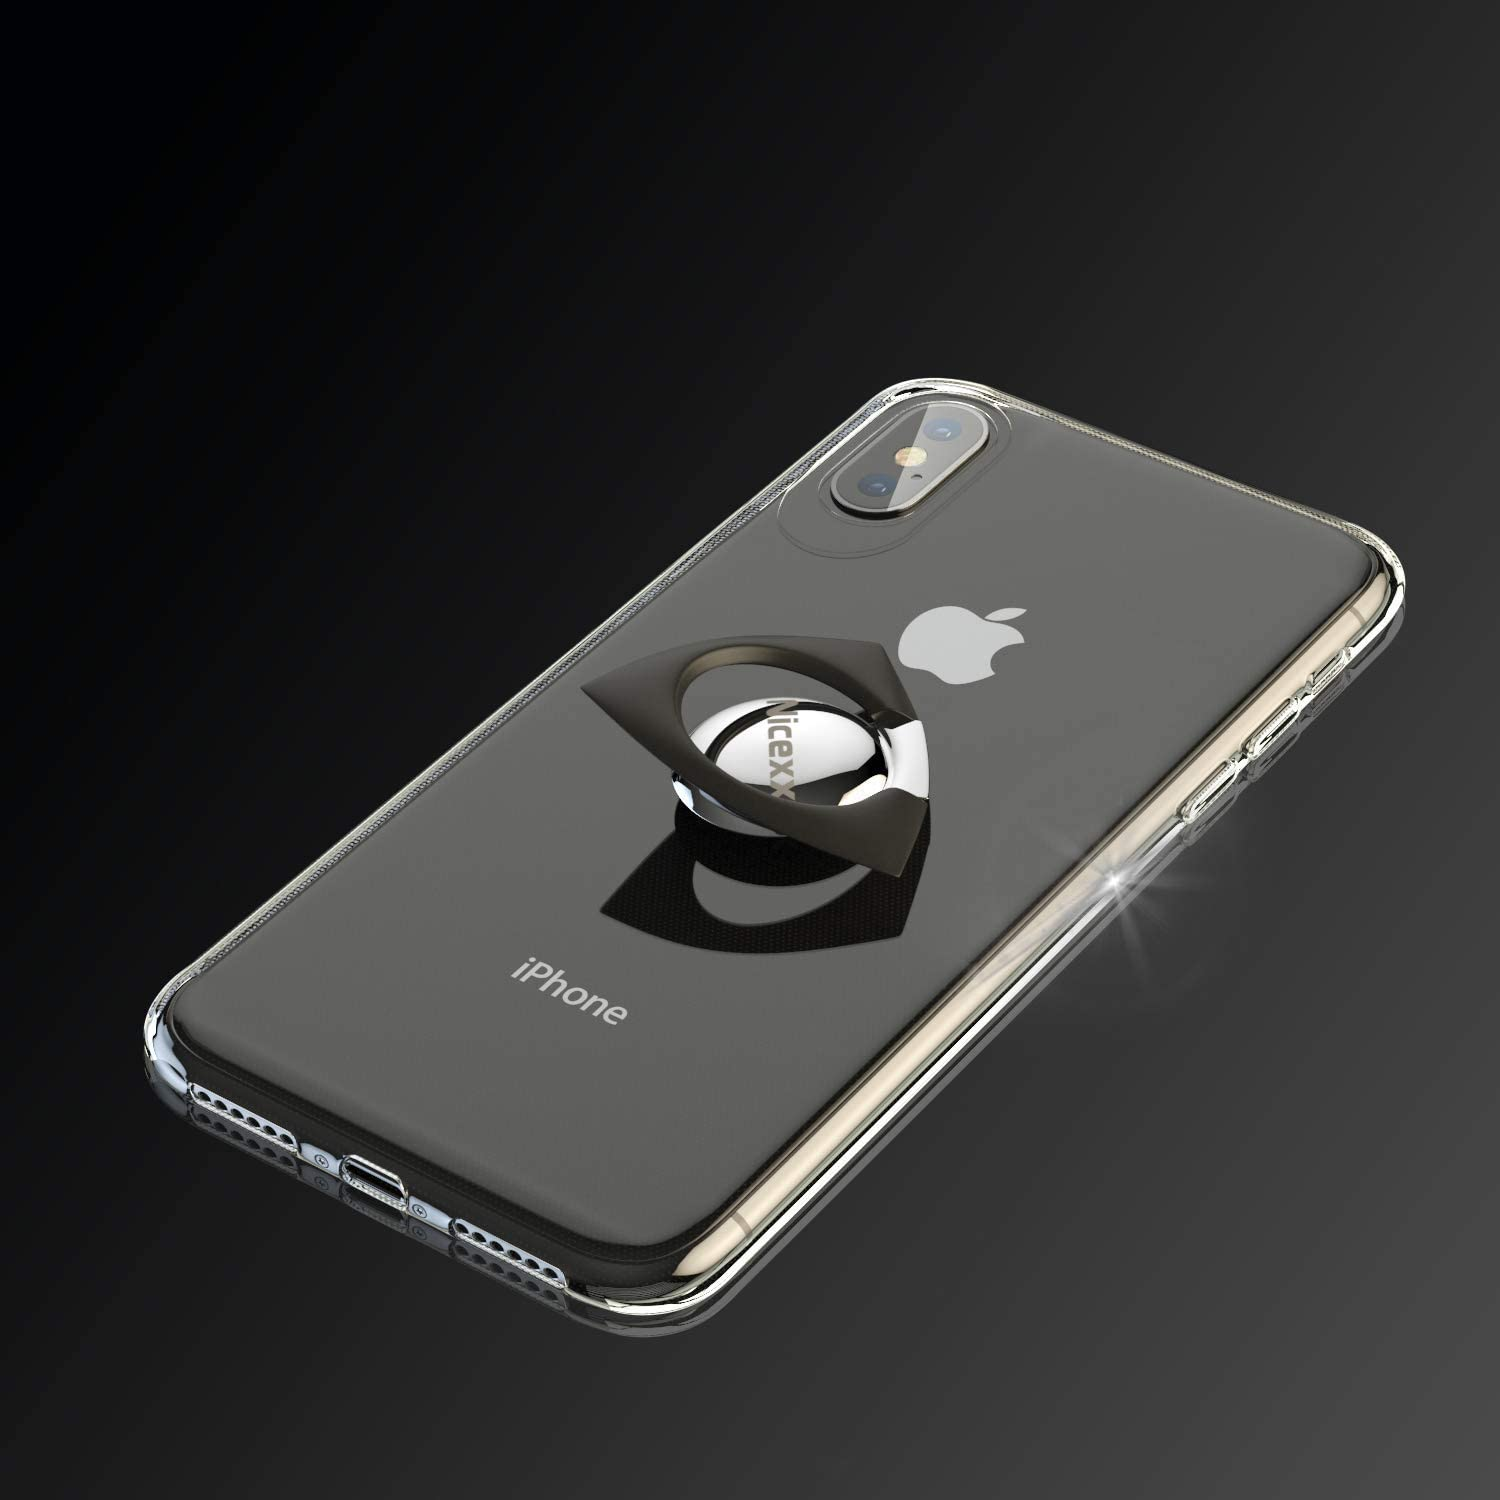 iPhone X Case   iPhone Xs Case   Transparent Soft TPU Case   Kickstand & Finger Ring   Built in Fidget Spinner   Compatible with Apple iPhone X/iPhone Xs